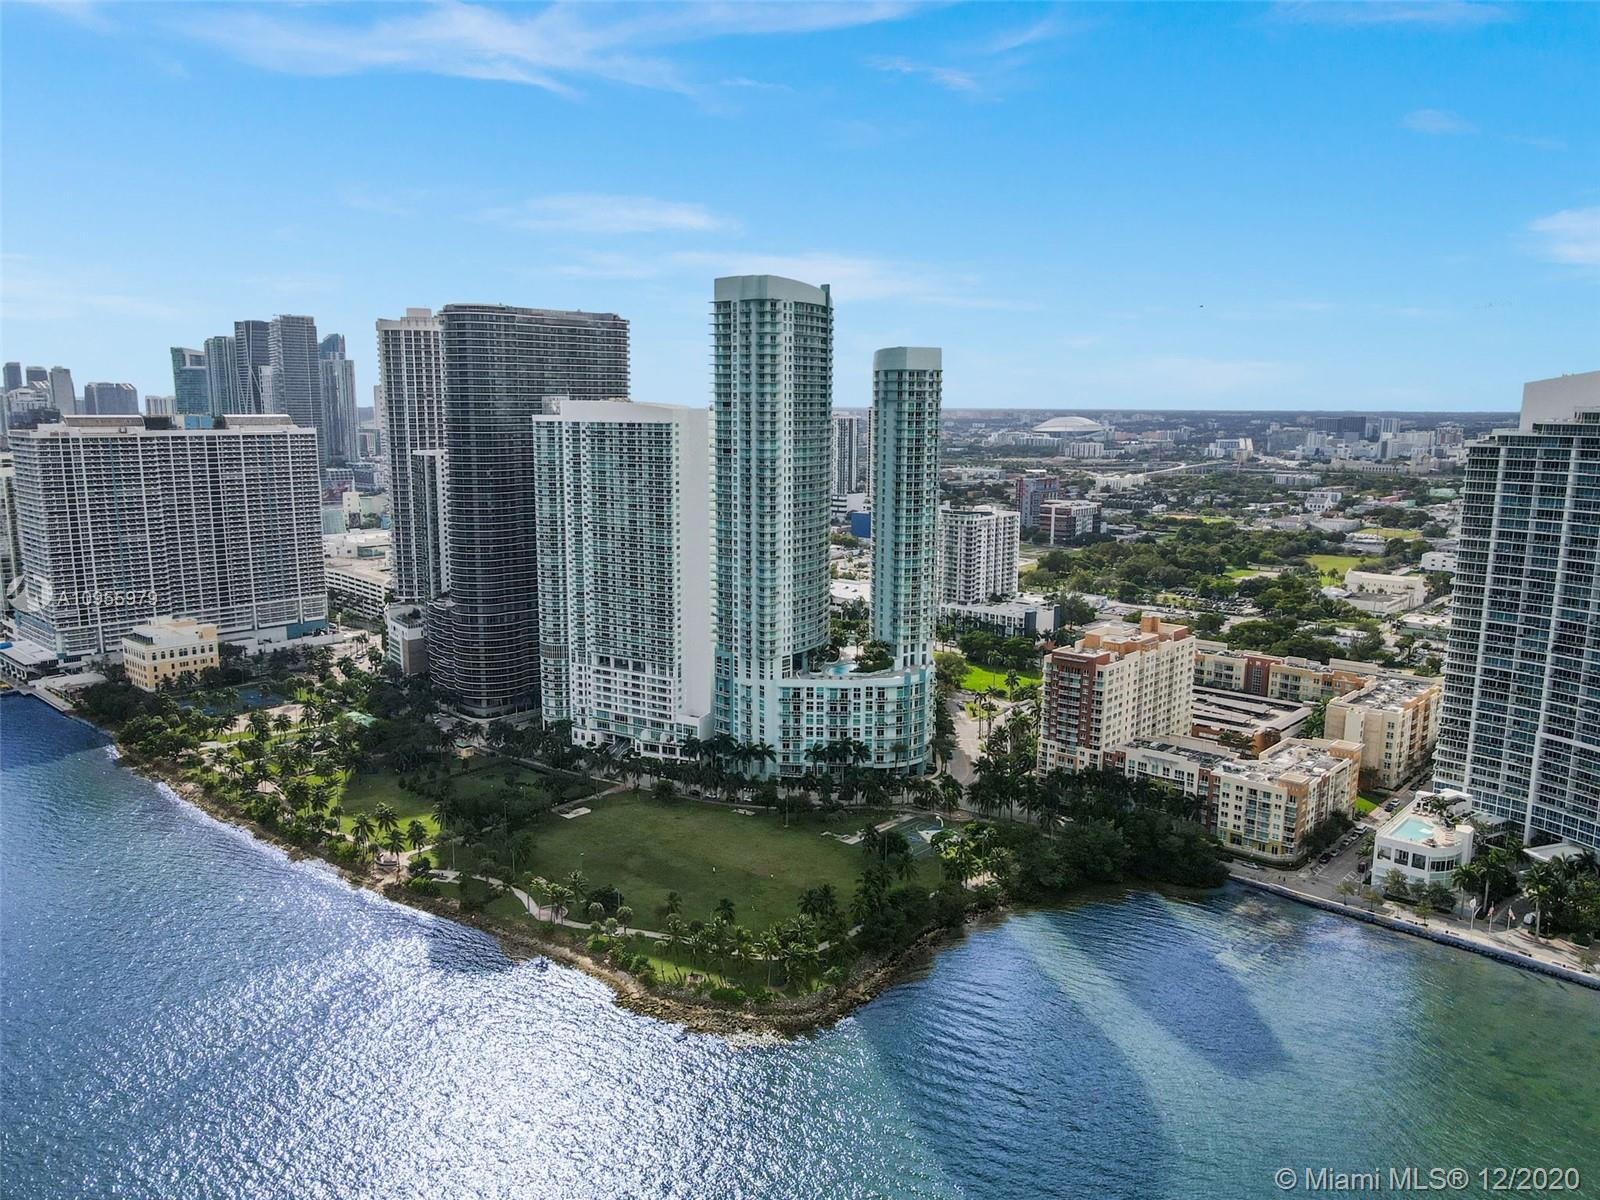 """Best PH unit in Edgewater. Direct Bay views as far as the eye can see from this 50th floor PH. Almost 2000 sq ft 3 bd 2.5 bth. 18""""x24"""" limestone tile throughout. Huge master bedroom. Big master bathroom with his/hers sinks, shower and tub. Open kitchen, washer/Dryer inside unit. 2 garaged parking spaces on the first floor just feet away from lobby entrance. Two pools, party room, Gym, Grocery store, dentist office and hair salon in lobby. Valet, 24 hr security, front desk attendant and secured elevators. Only 6 units on your floor. Public Park across the street with 2 tennis courts, outdoor gym, basketball court, bike/run trail and more. Storage cage included with unit. Unit is vacant and readily available. Very easy to show. CALL LISTING AGENT"""